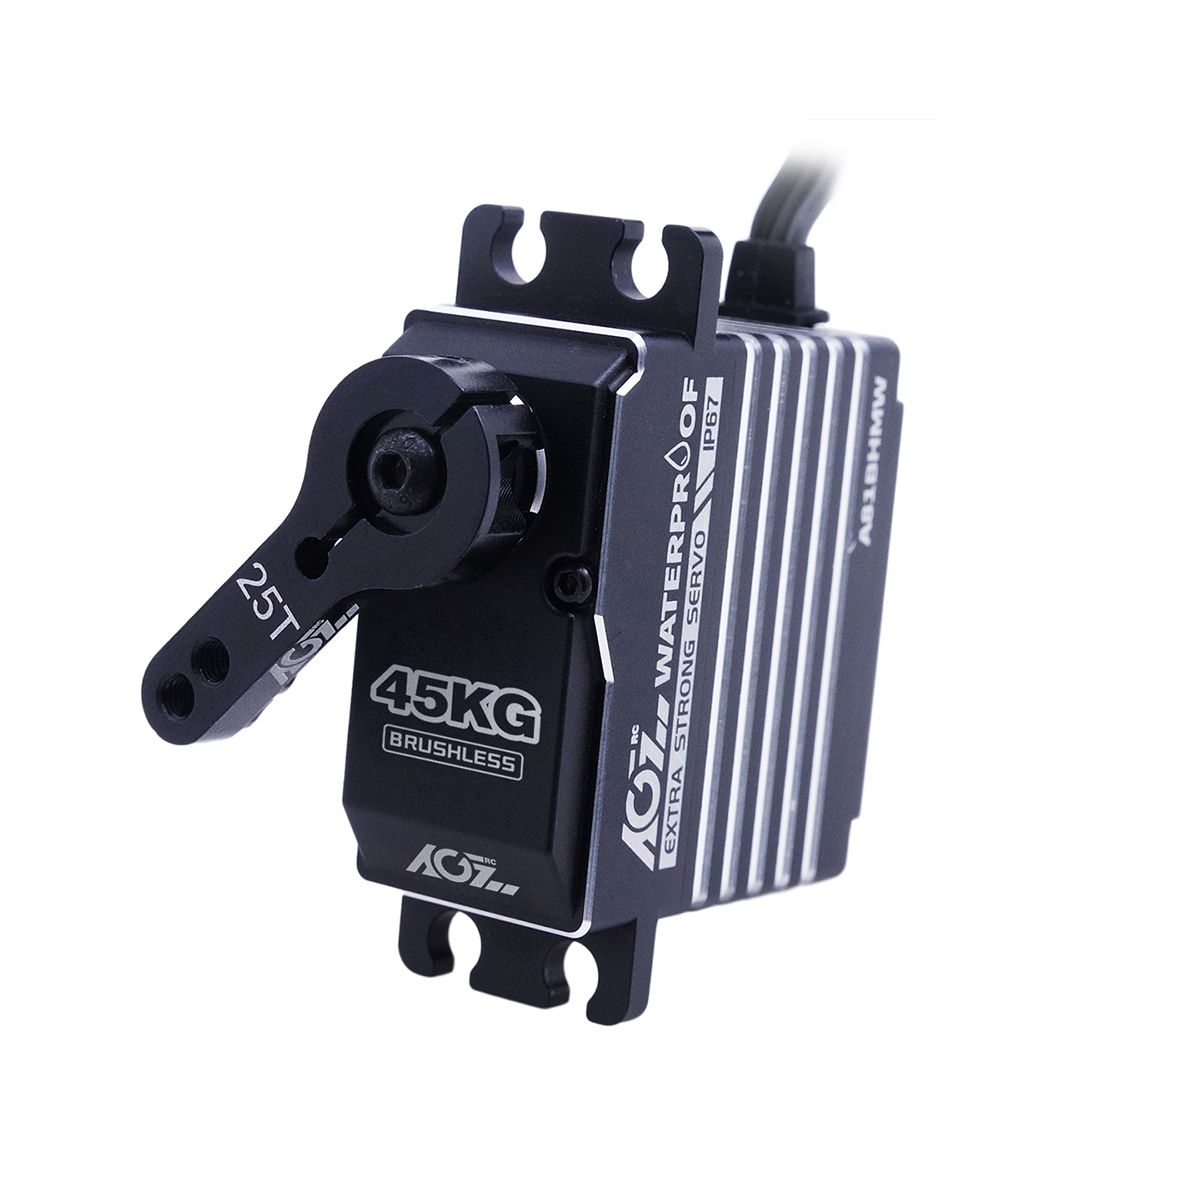 AGFRC A81BHMW HV 0.085S 45KG Super Torque Waterproof Programmable Digital Waterproof Standard Servo